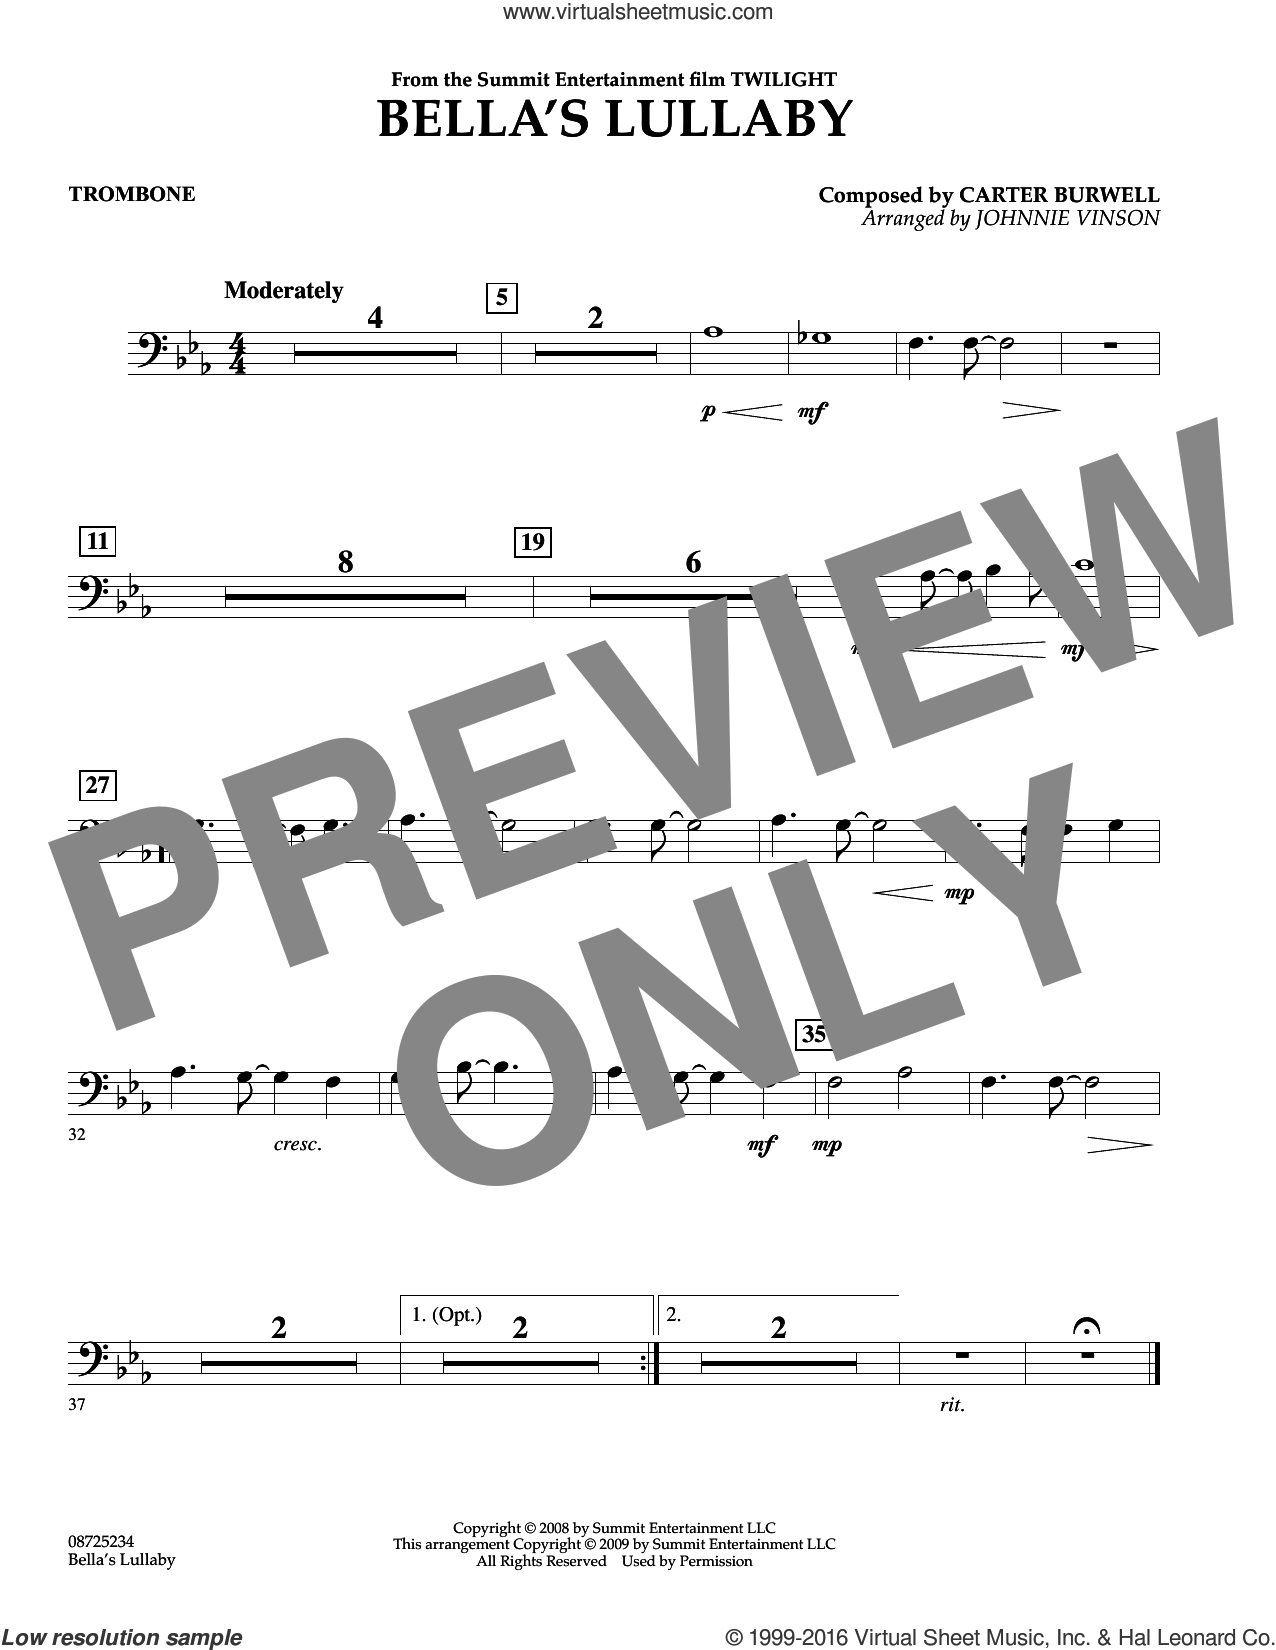 Bella's Lullaby (from Twilight) sheet music for concert band (trombone) by Carter Burwell and Johnnie Vinson, intermediate